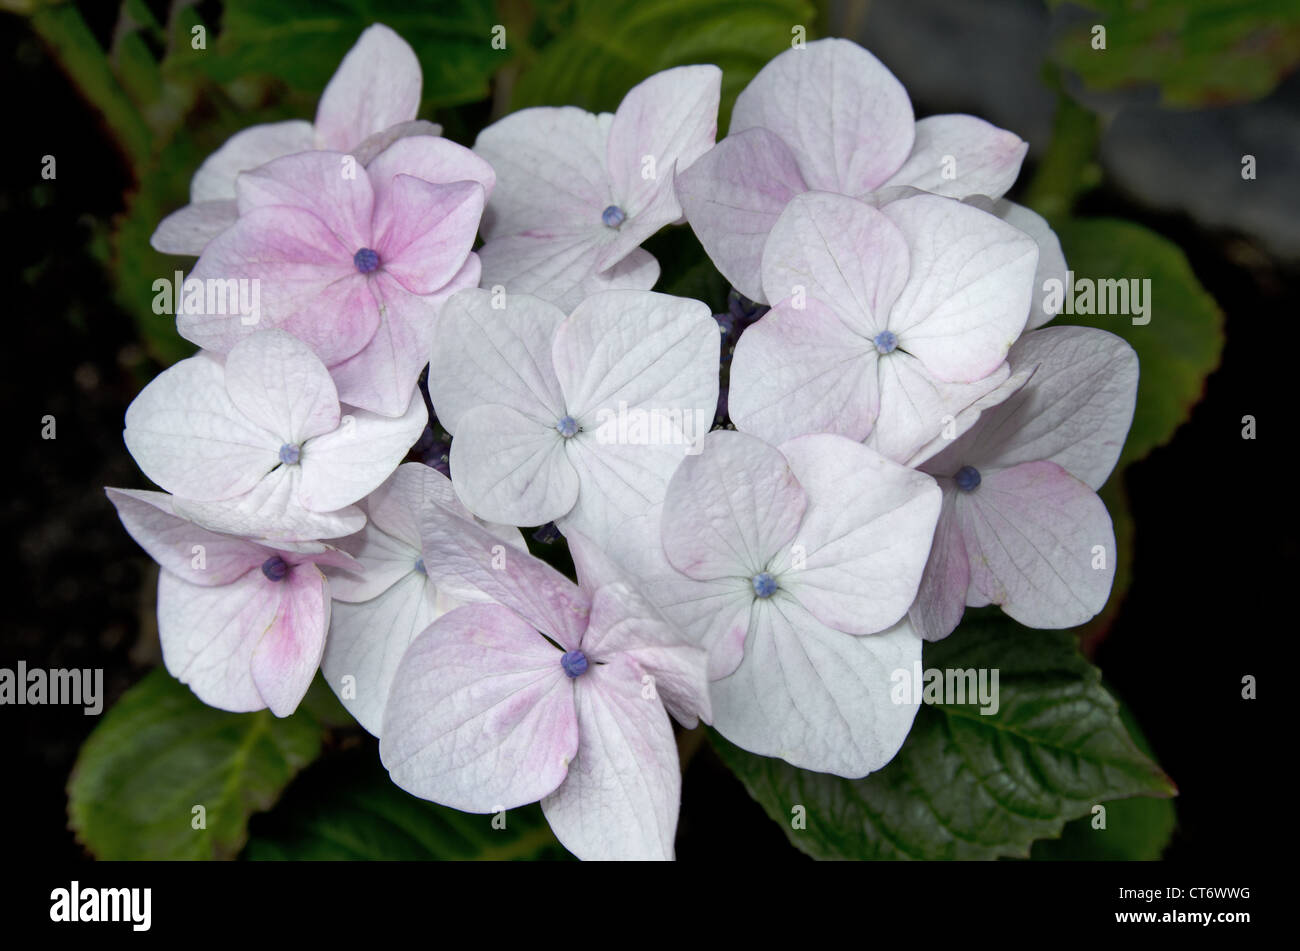 Bunch Of White And Light Pink Colour Flowers Netherlands Holland